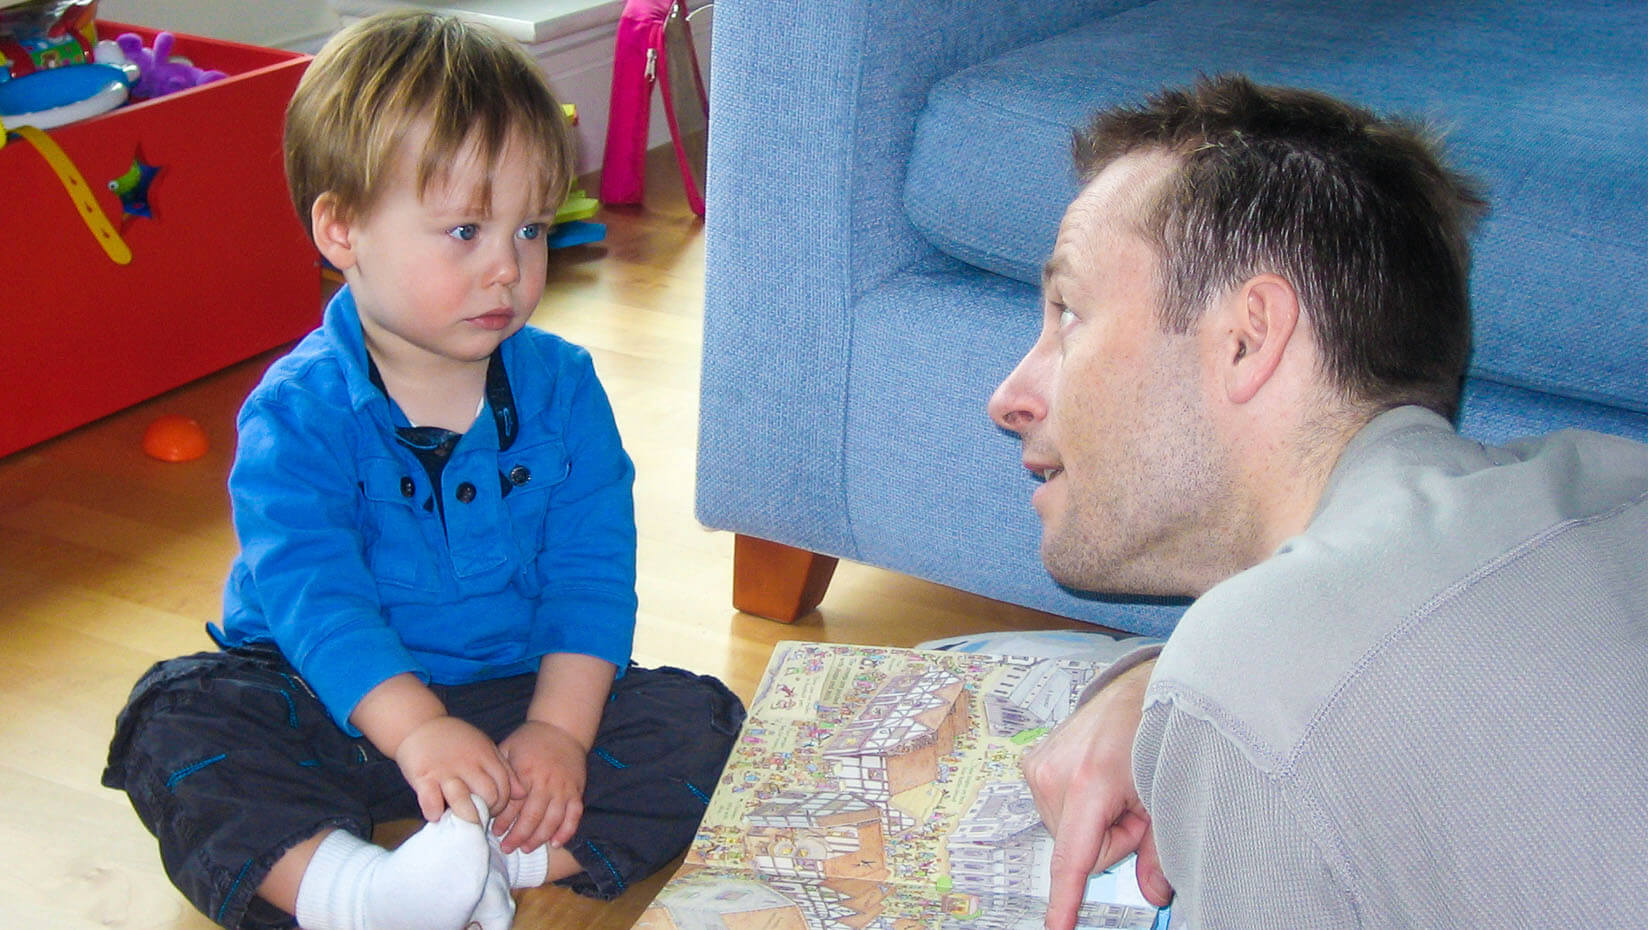 Toddler looking at a book with a man